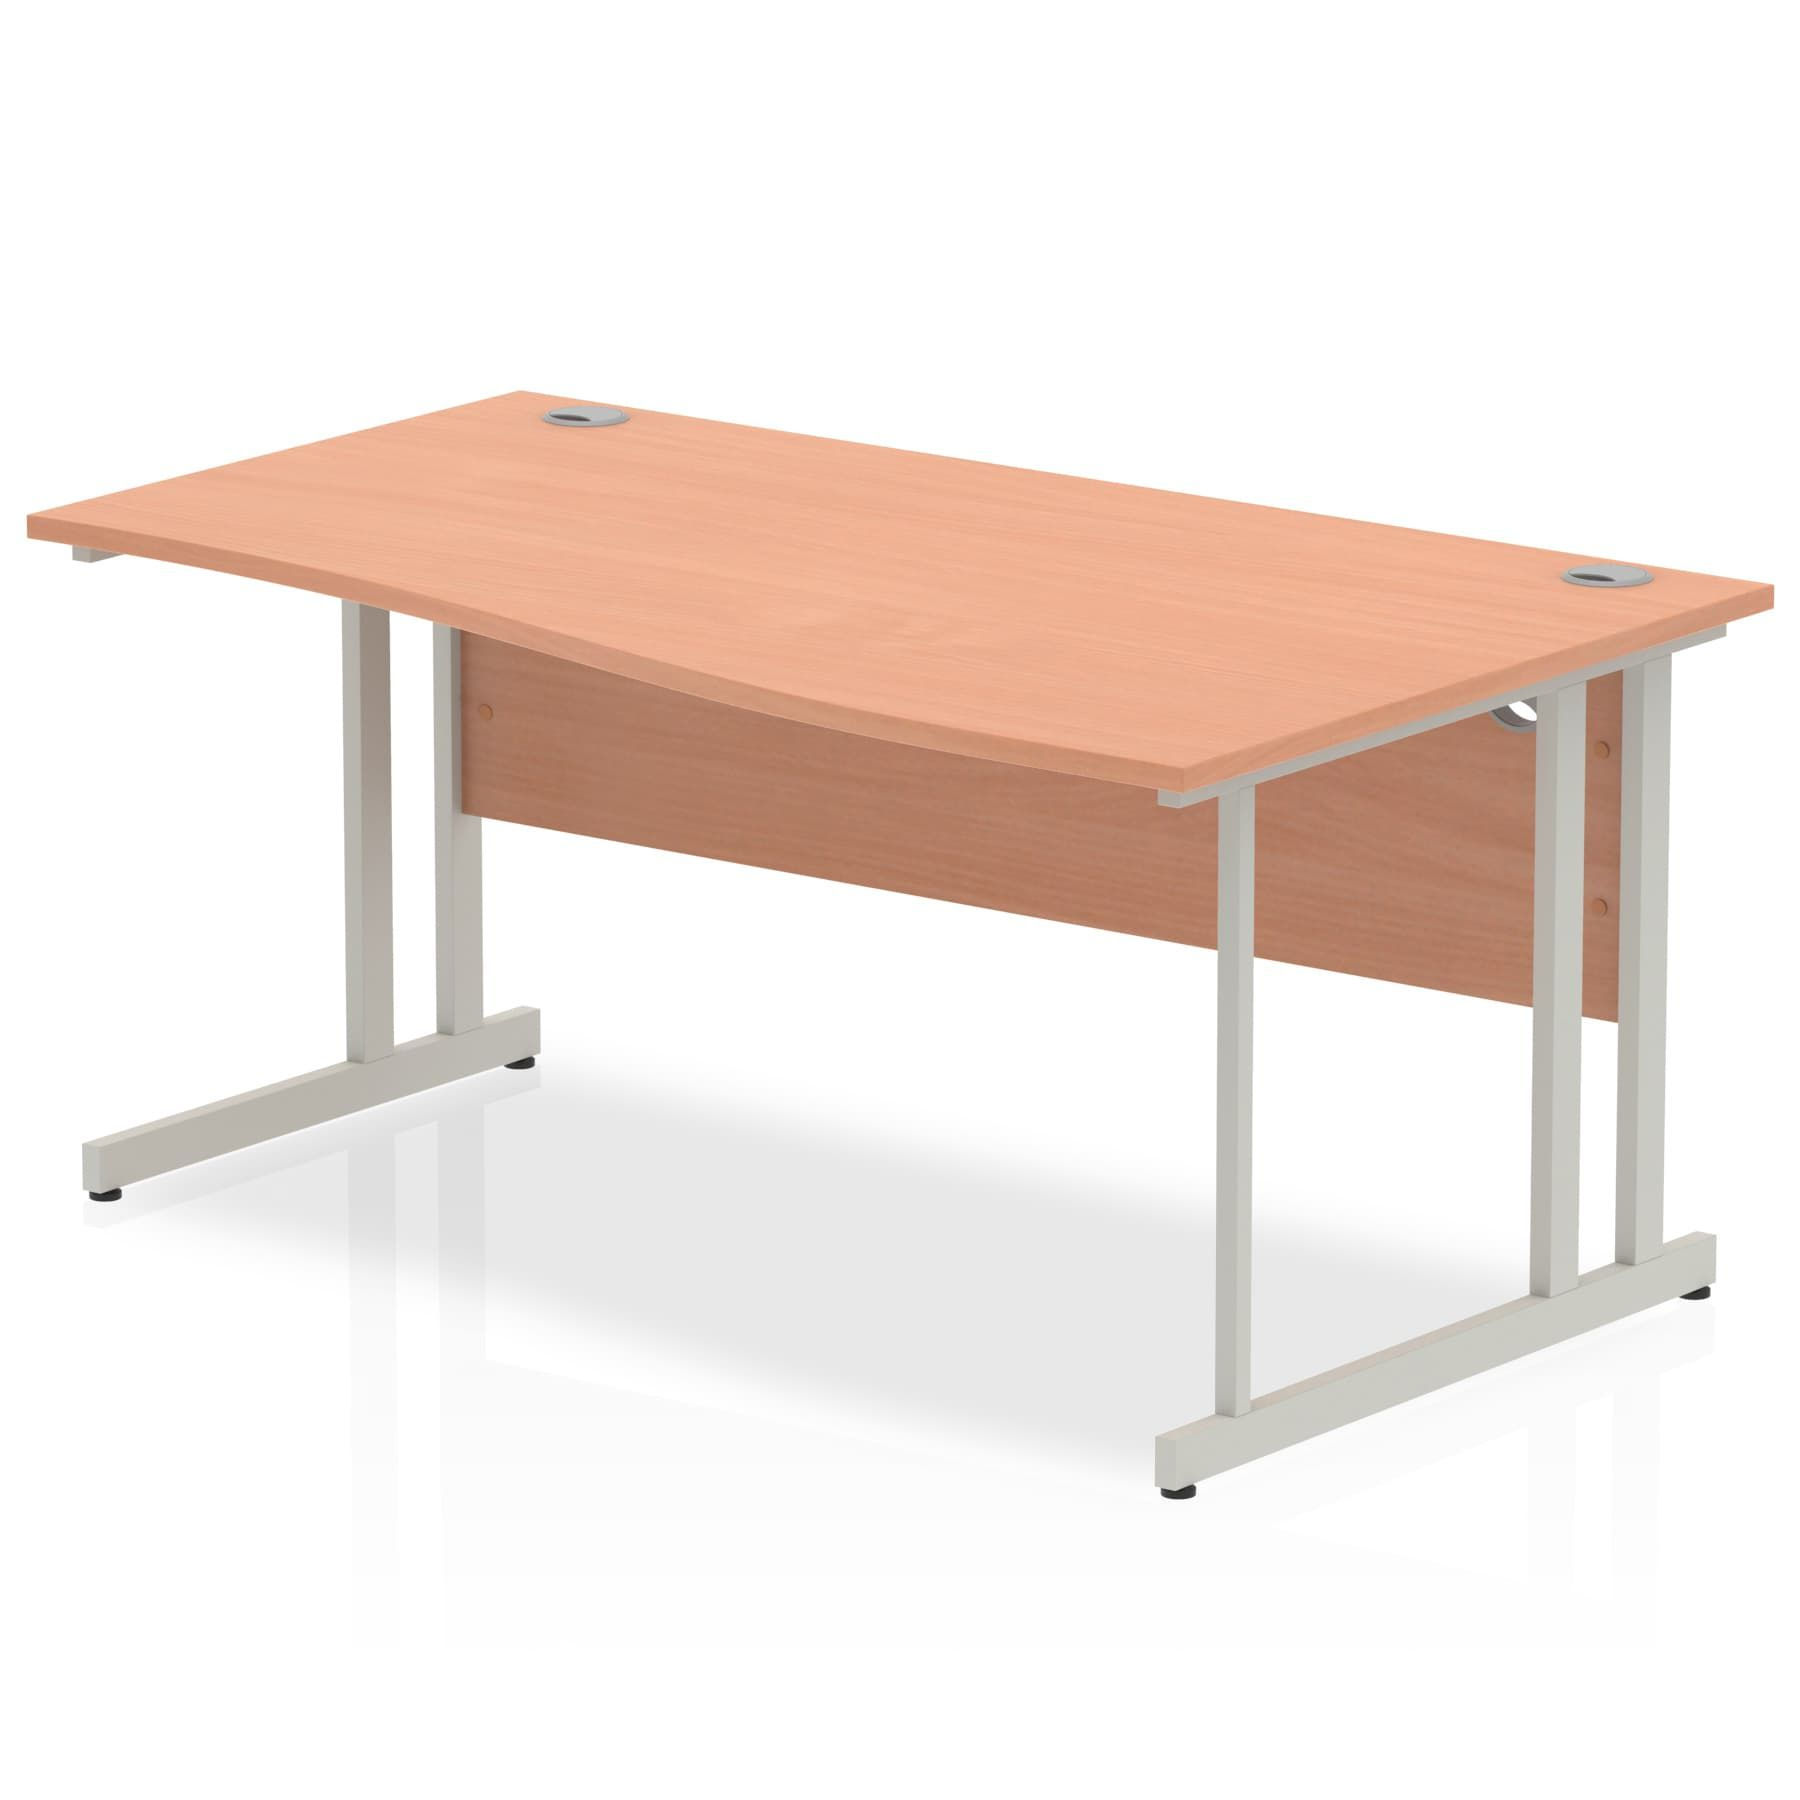 Impulse 1600 Right Hand Wave Desk with Cantilever Leg